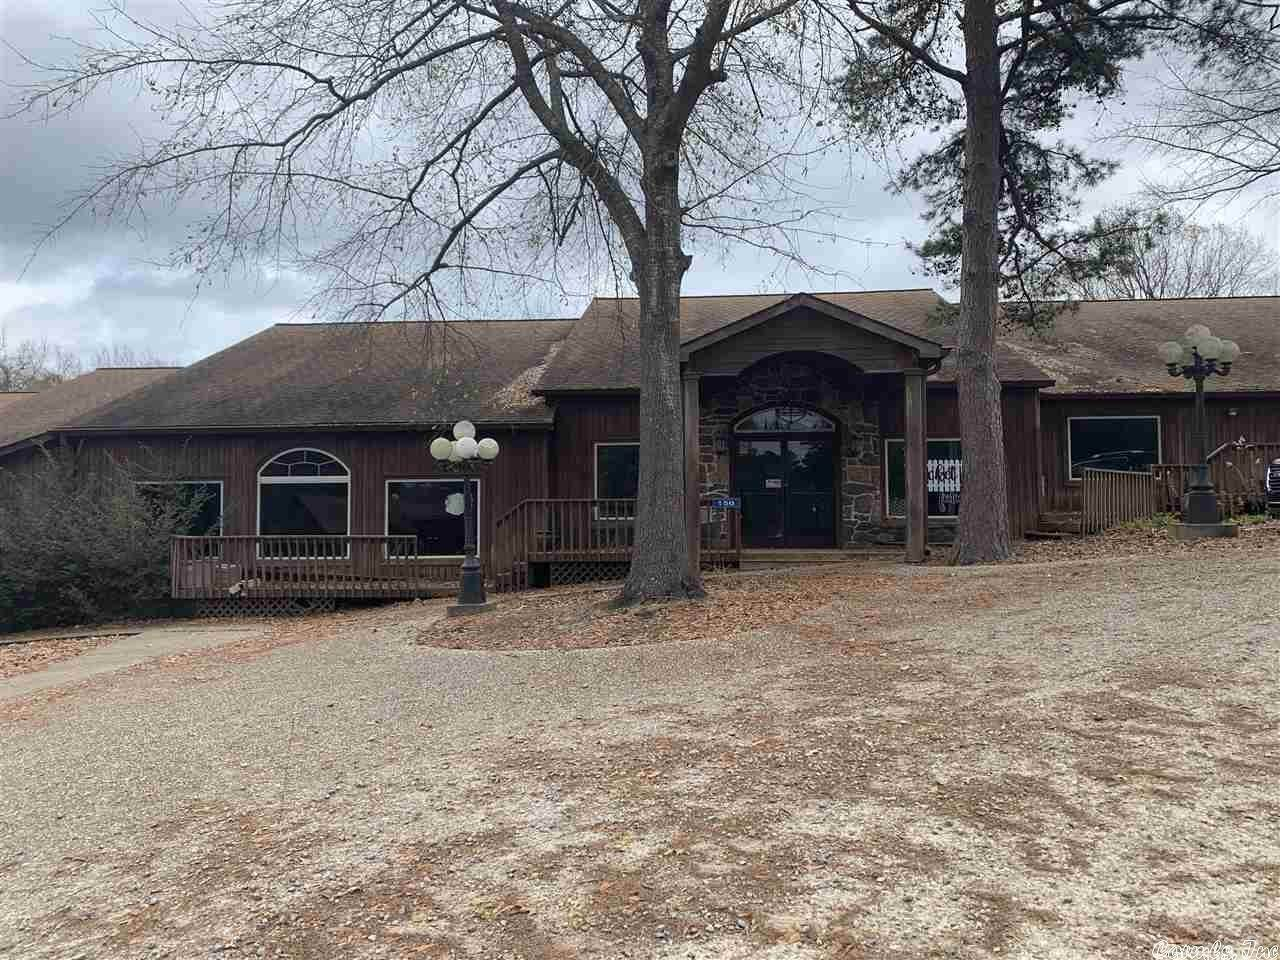 Commercial / Industrial for Sale at 150 Knight Haven Circle Star City, Arkansas 71667 United States